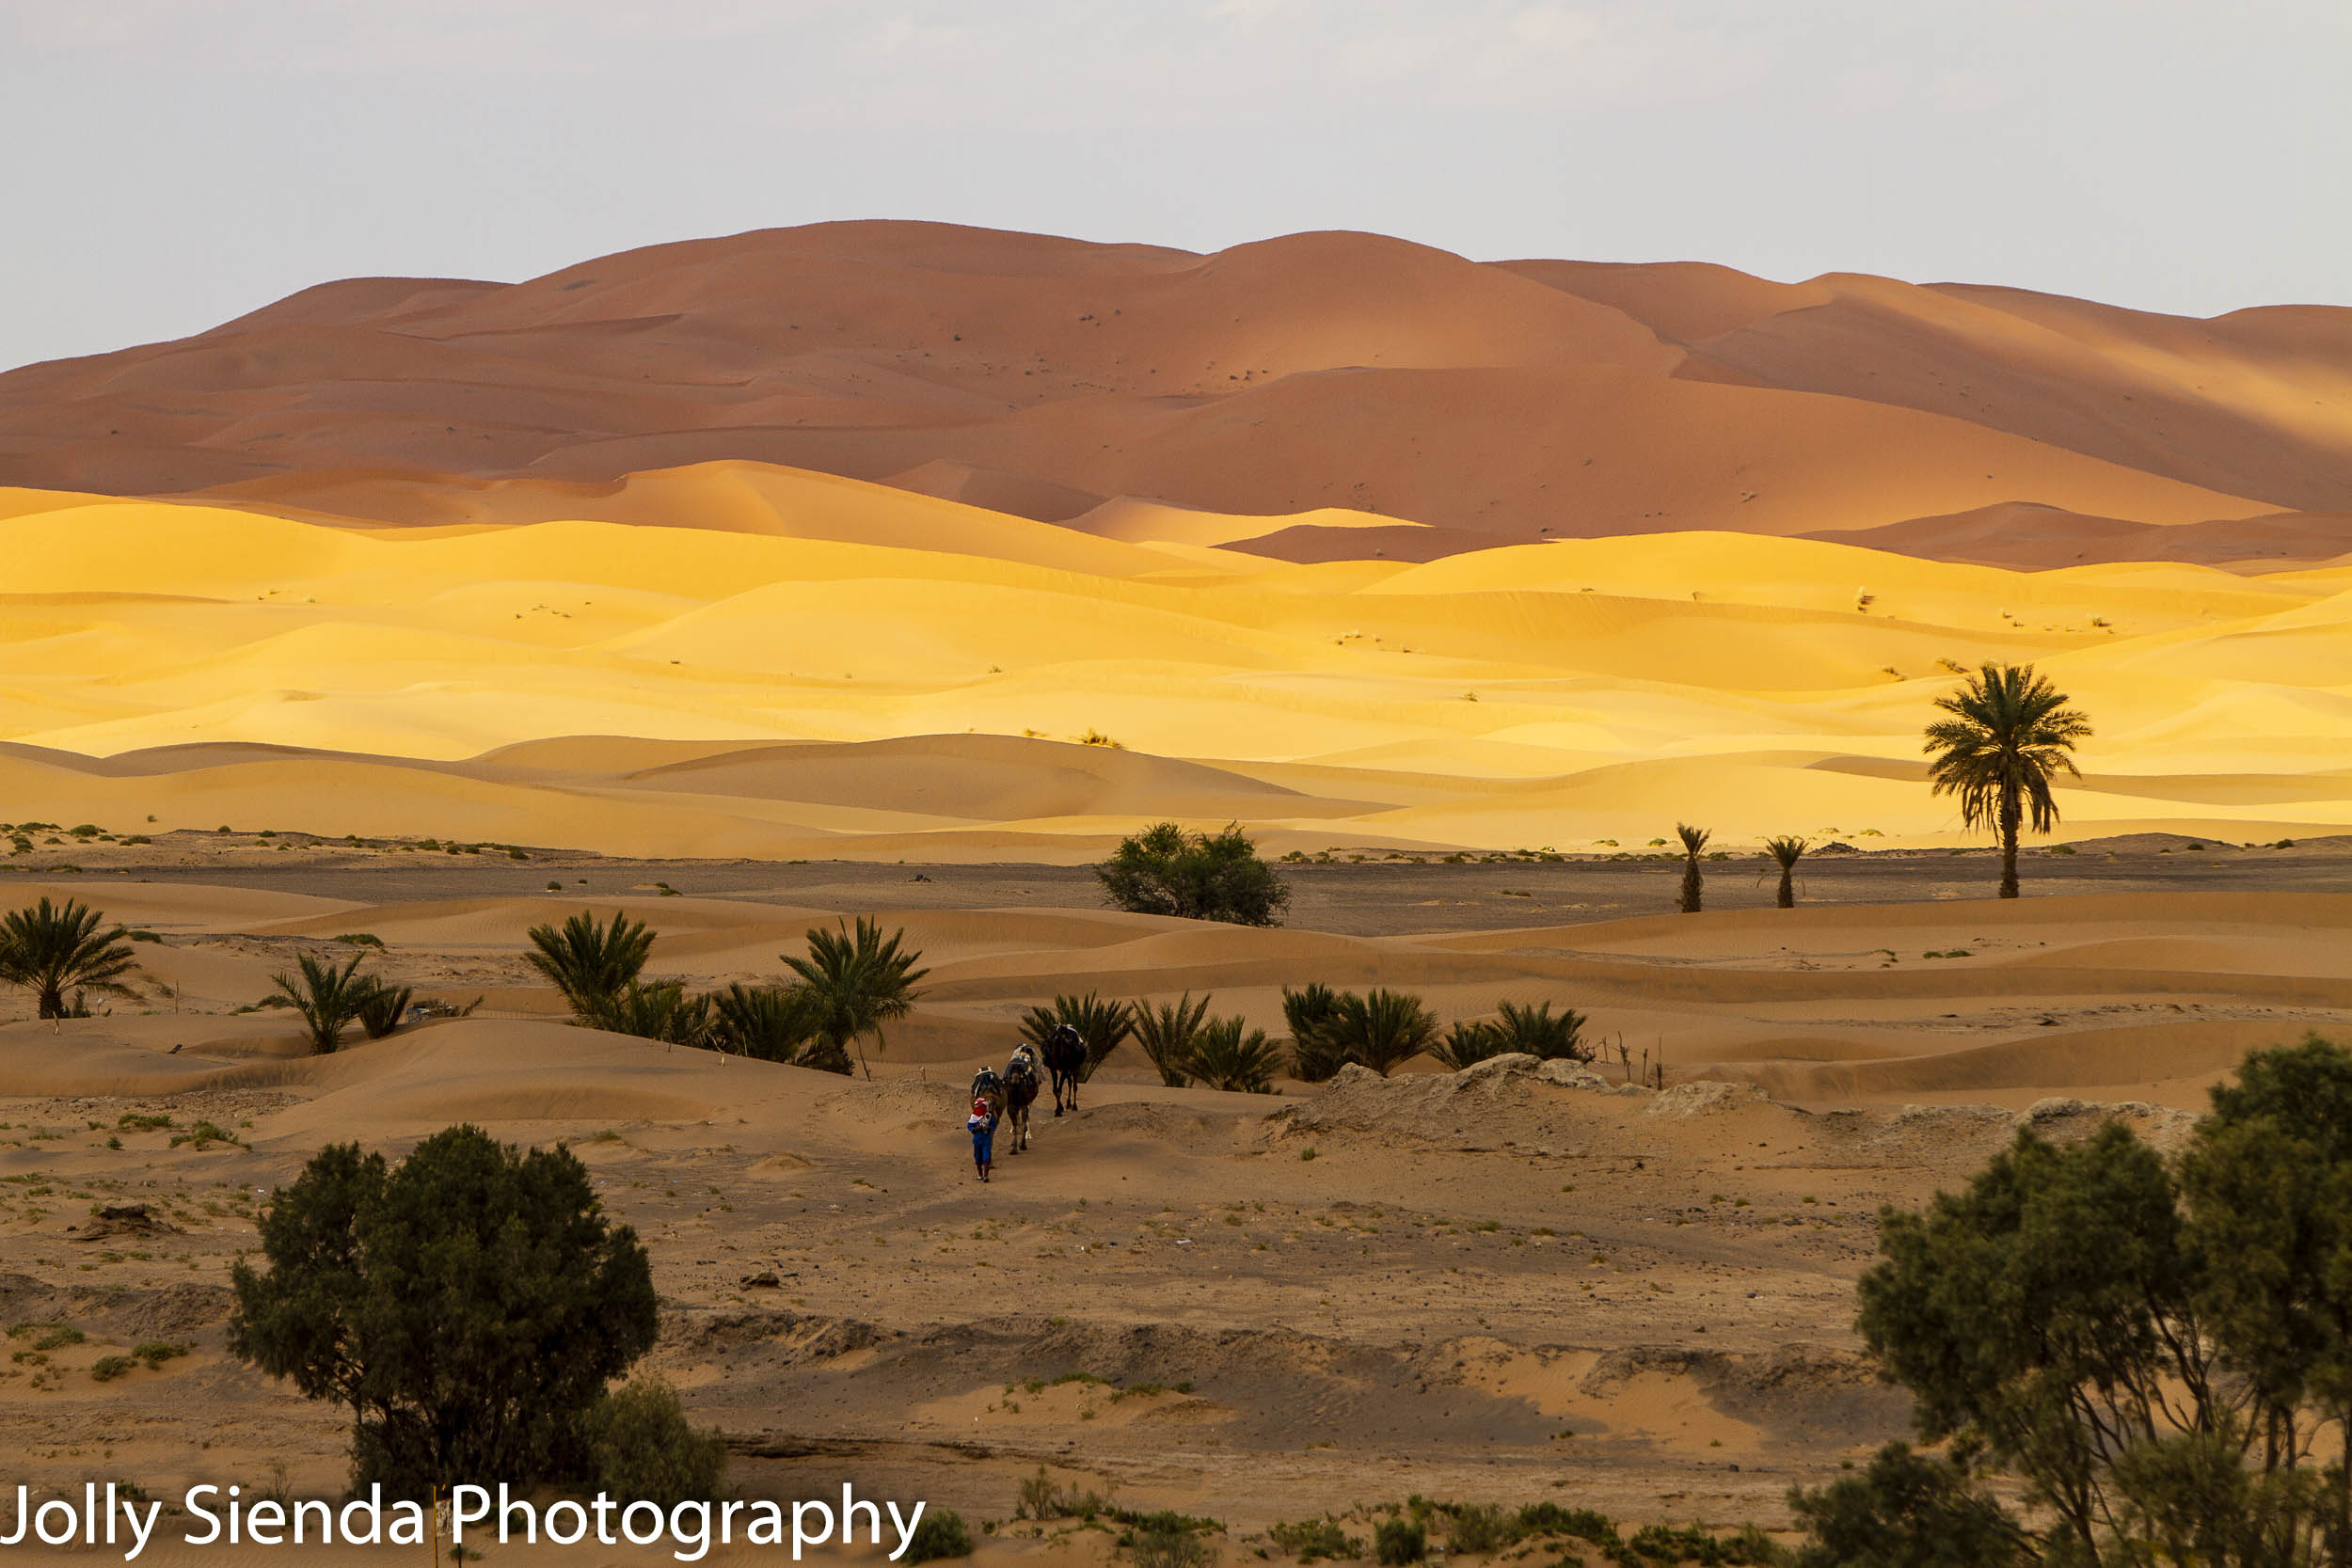 Camel trek at the dunes of the Sahara Desert